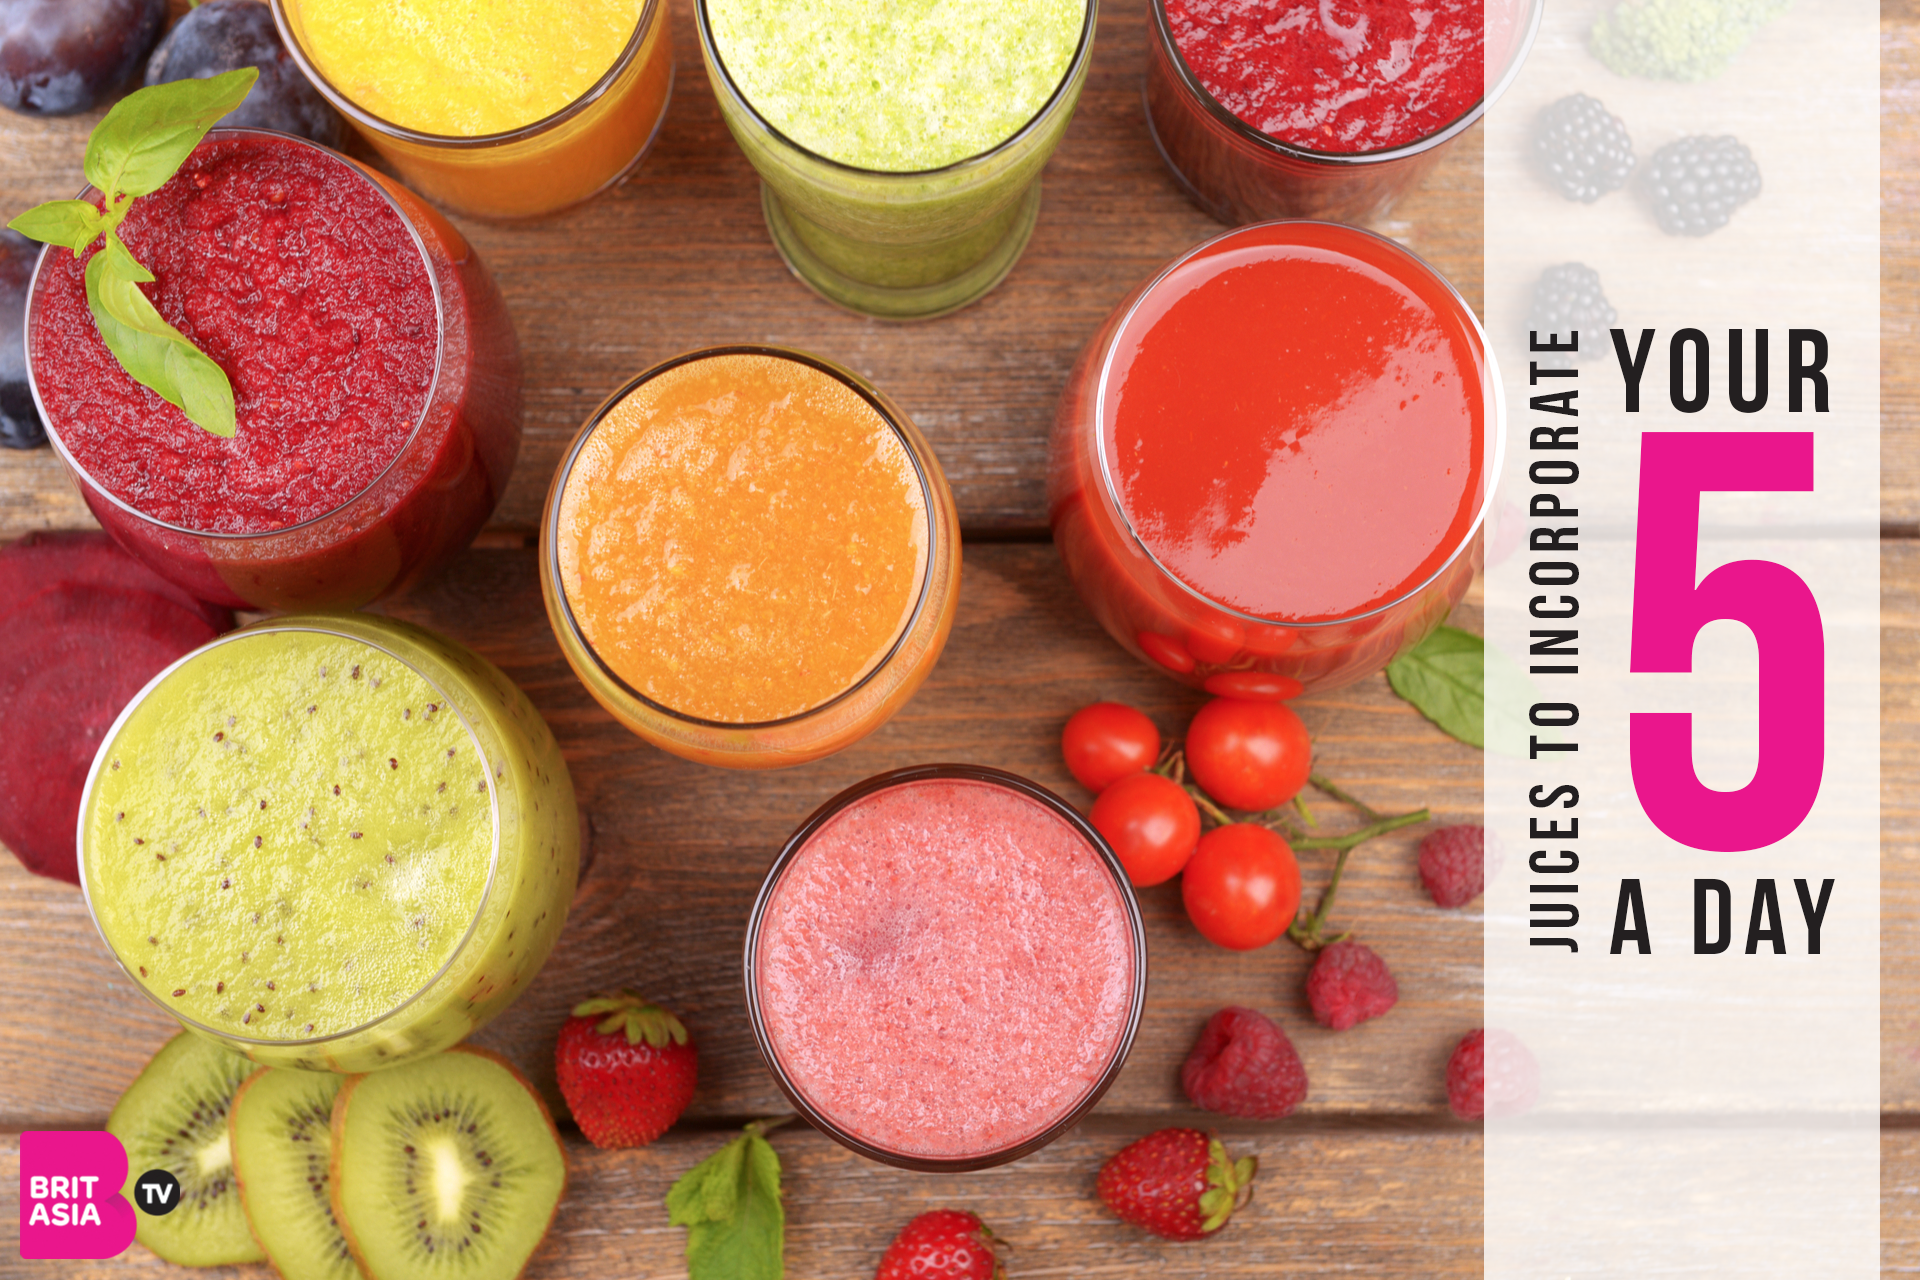 JUICES TO INCORPORATE YOUR 5 A DAY